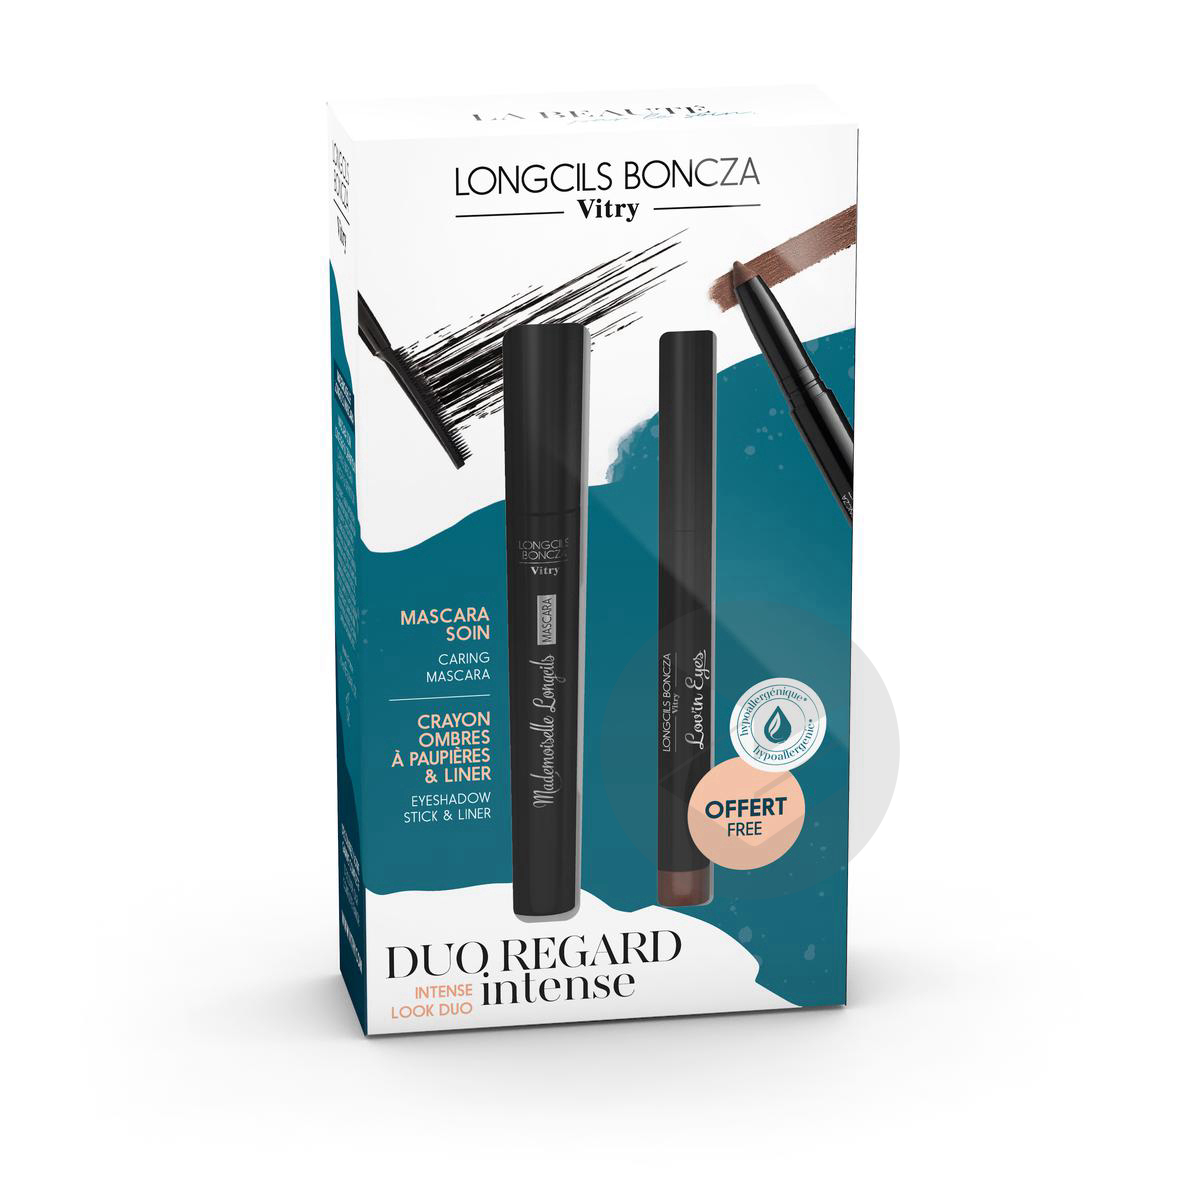 Coffret Mascara Melle Lov In Eyes Offert